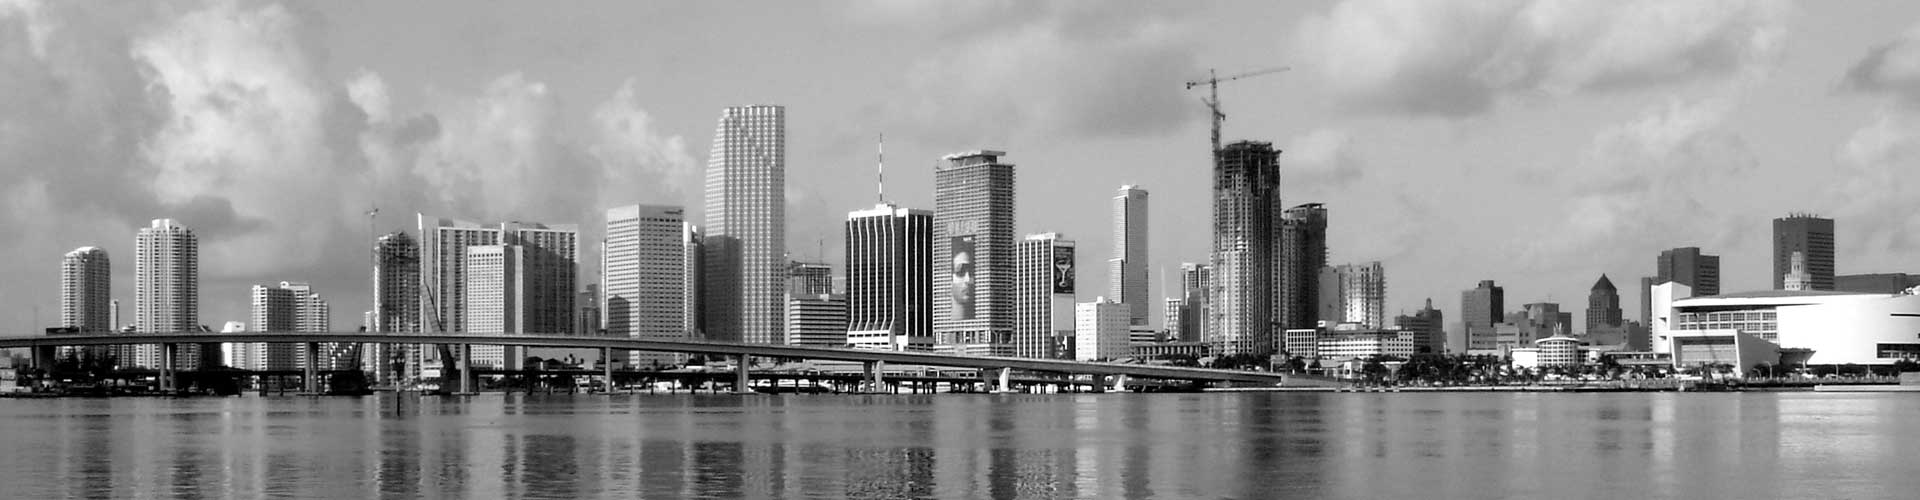 Downtown Miami | Miami-Dade County | Paradigm Construction Group of South Florida